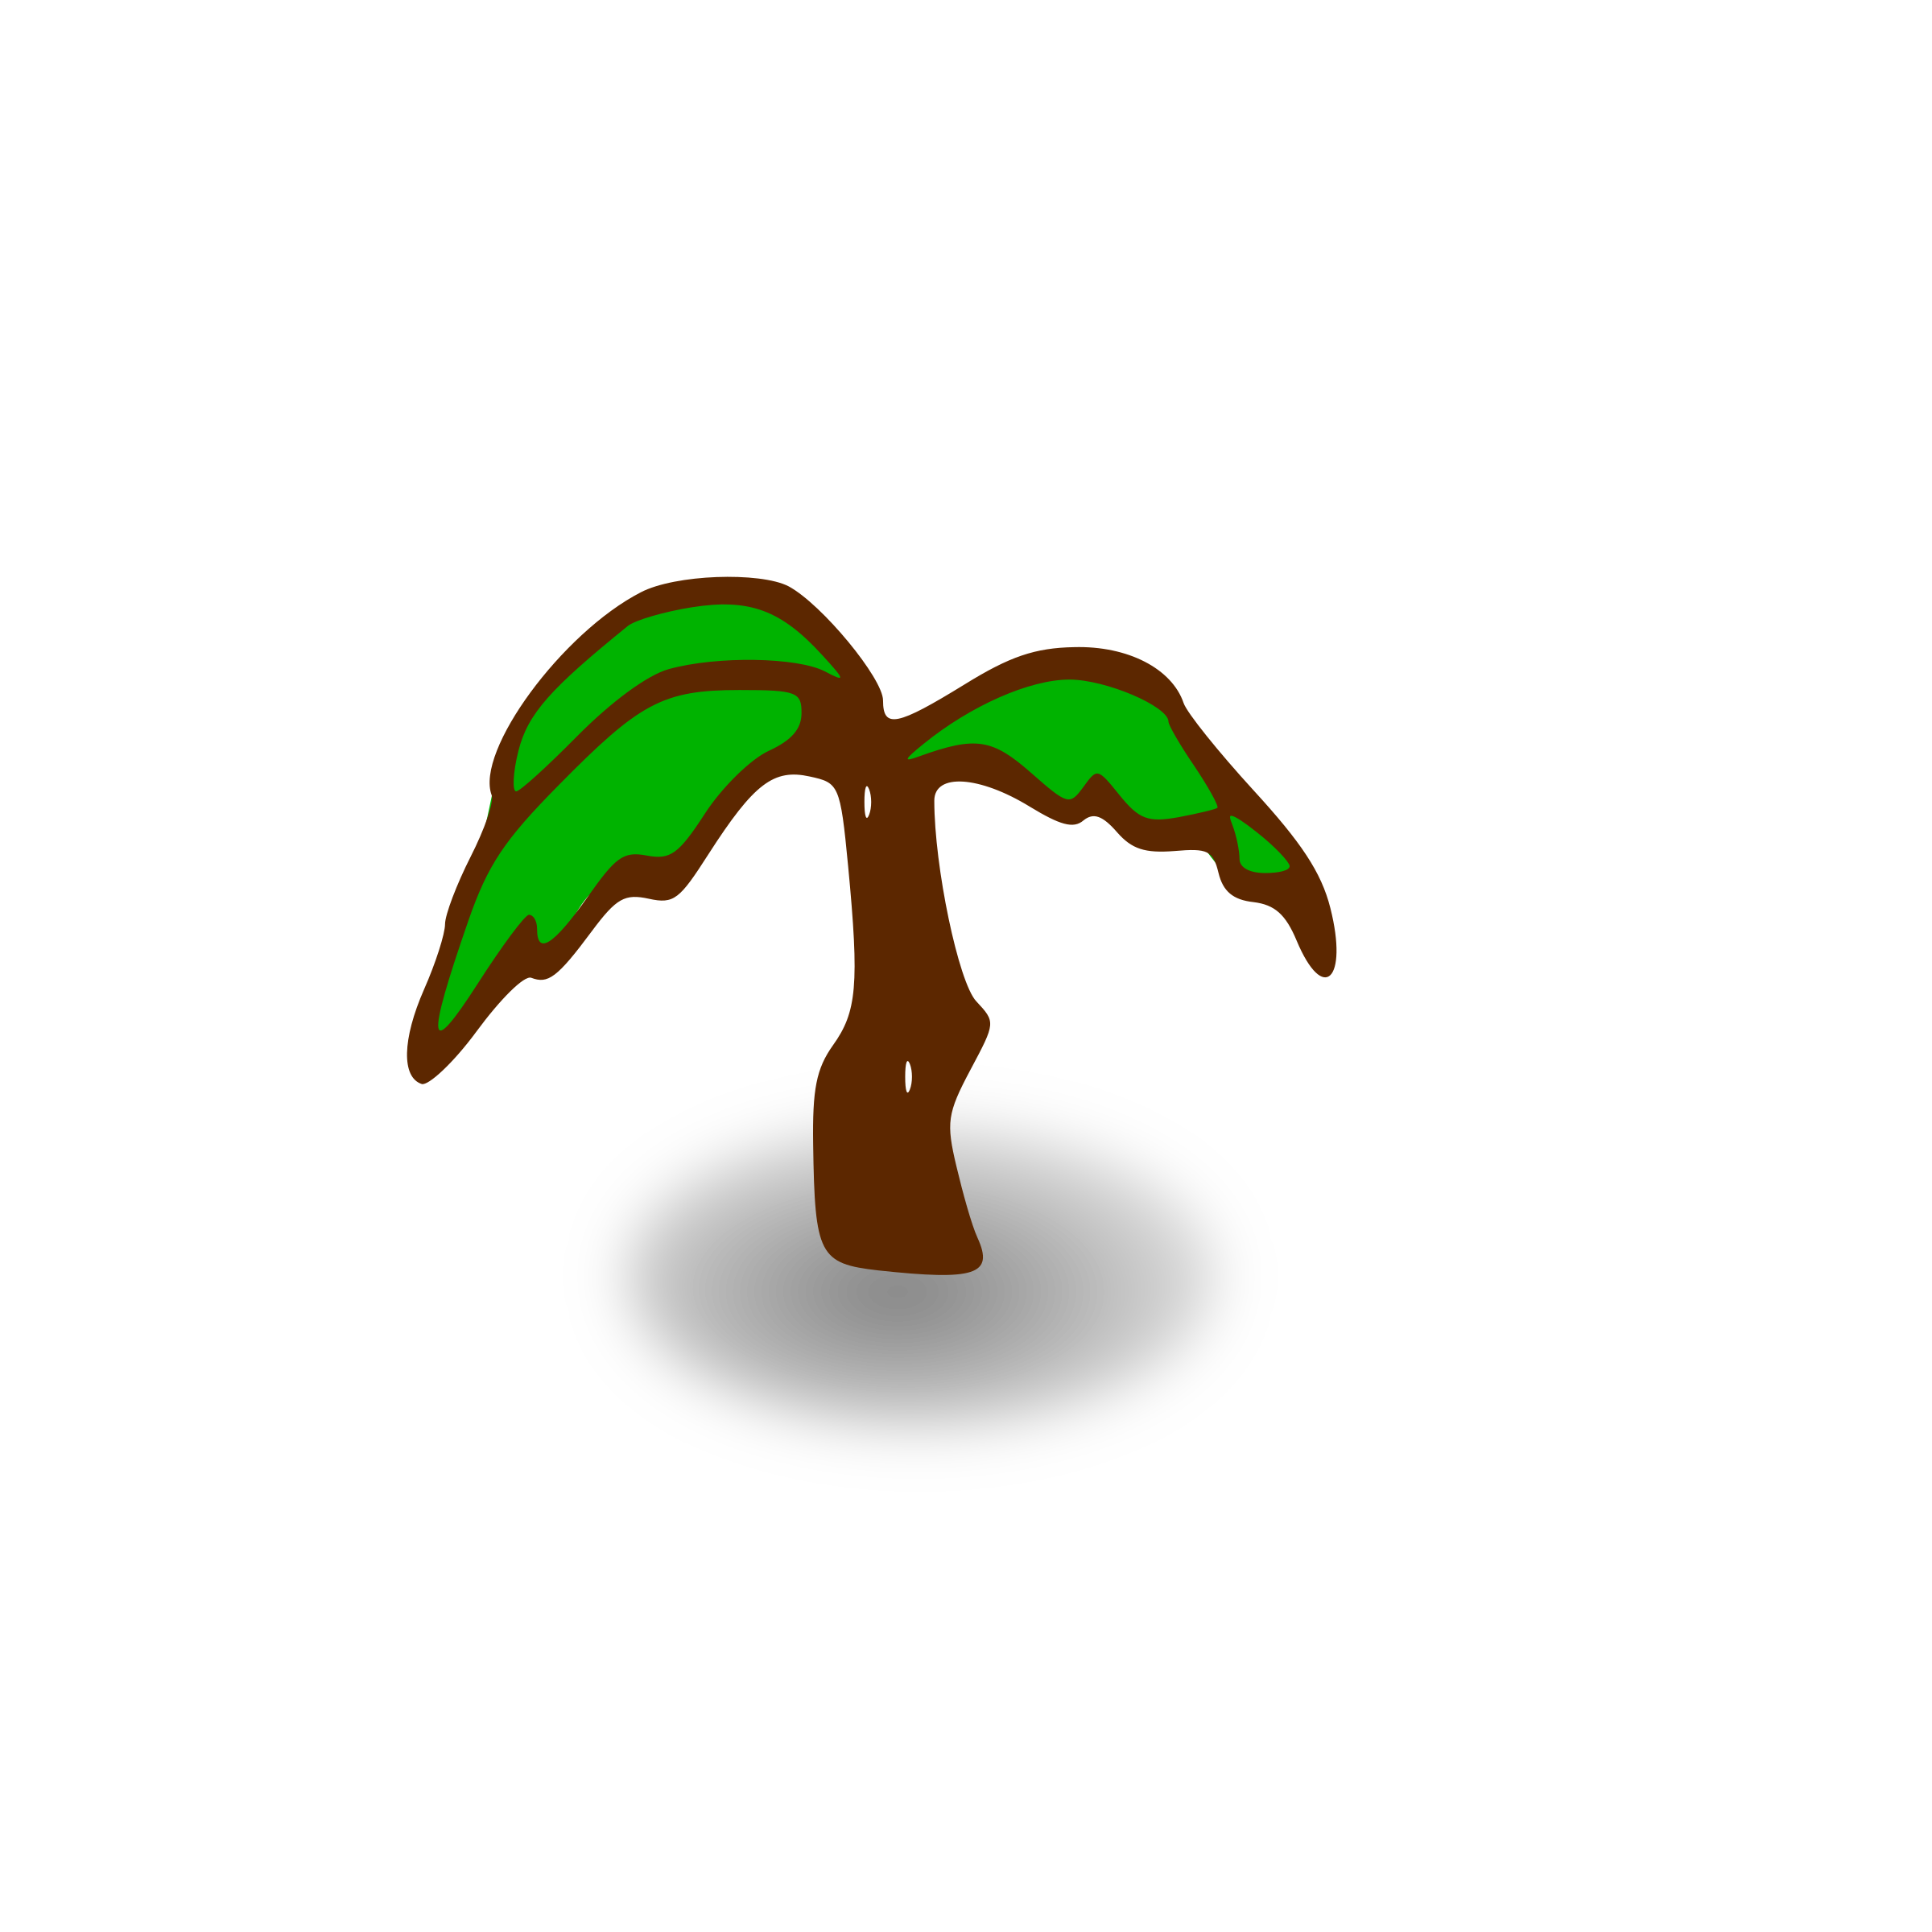 Tree map clipart picture stock Clipart - RPG map symbols: palm tree picture stock